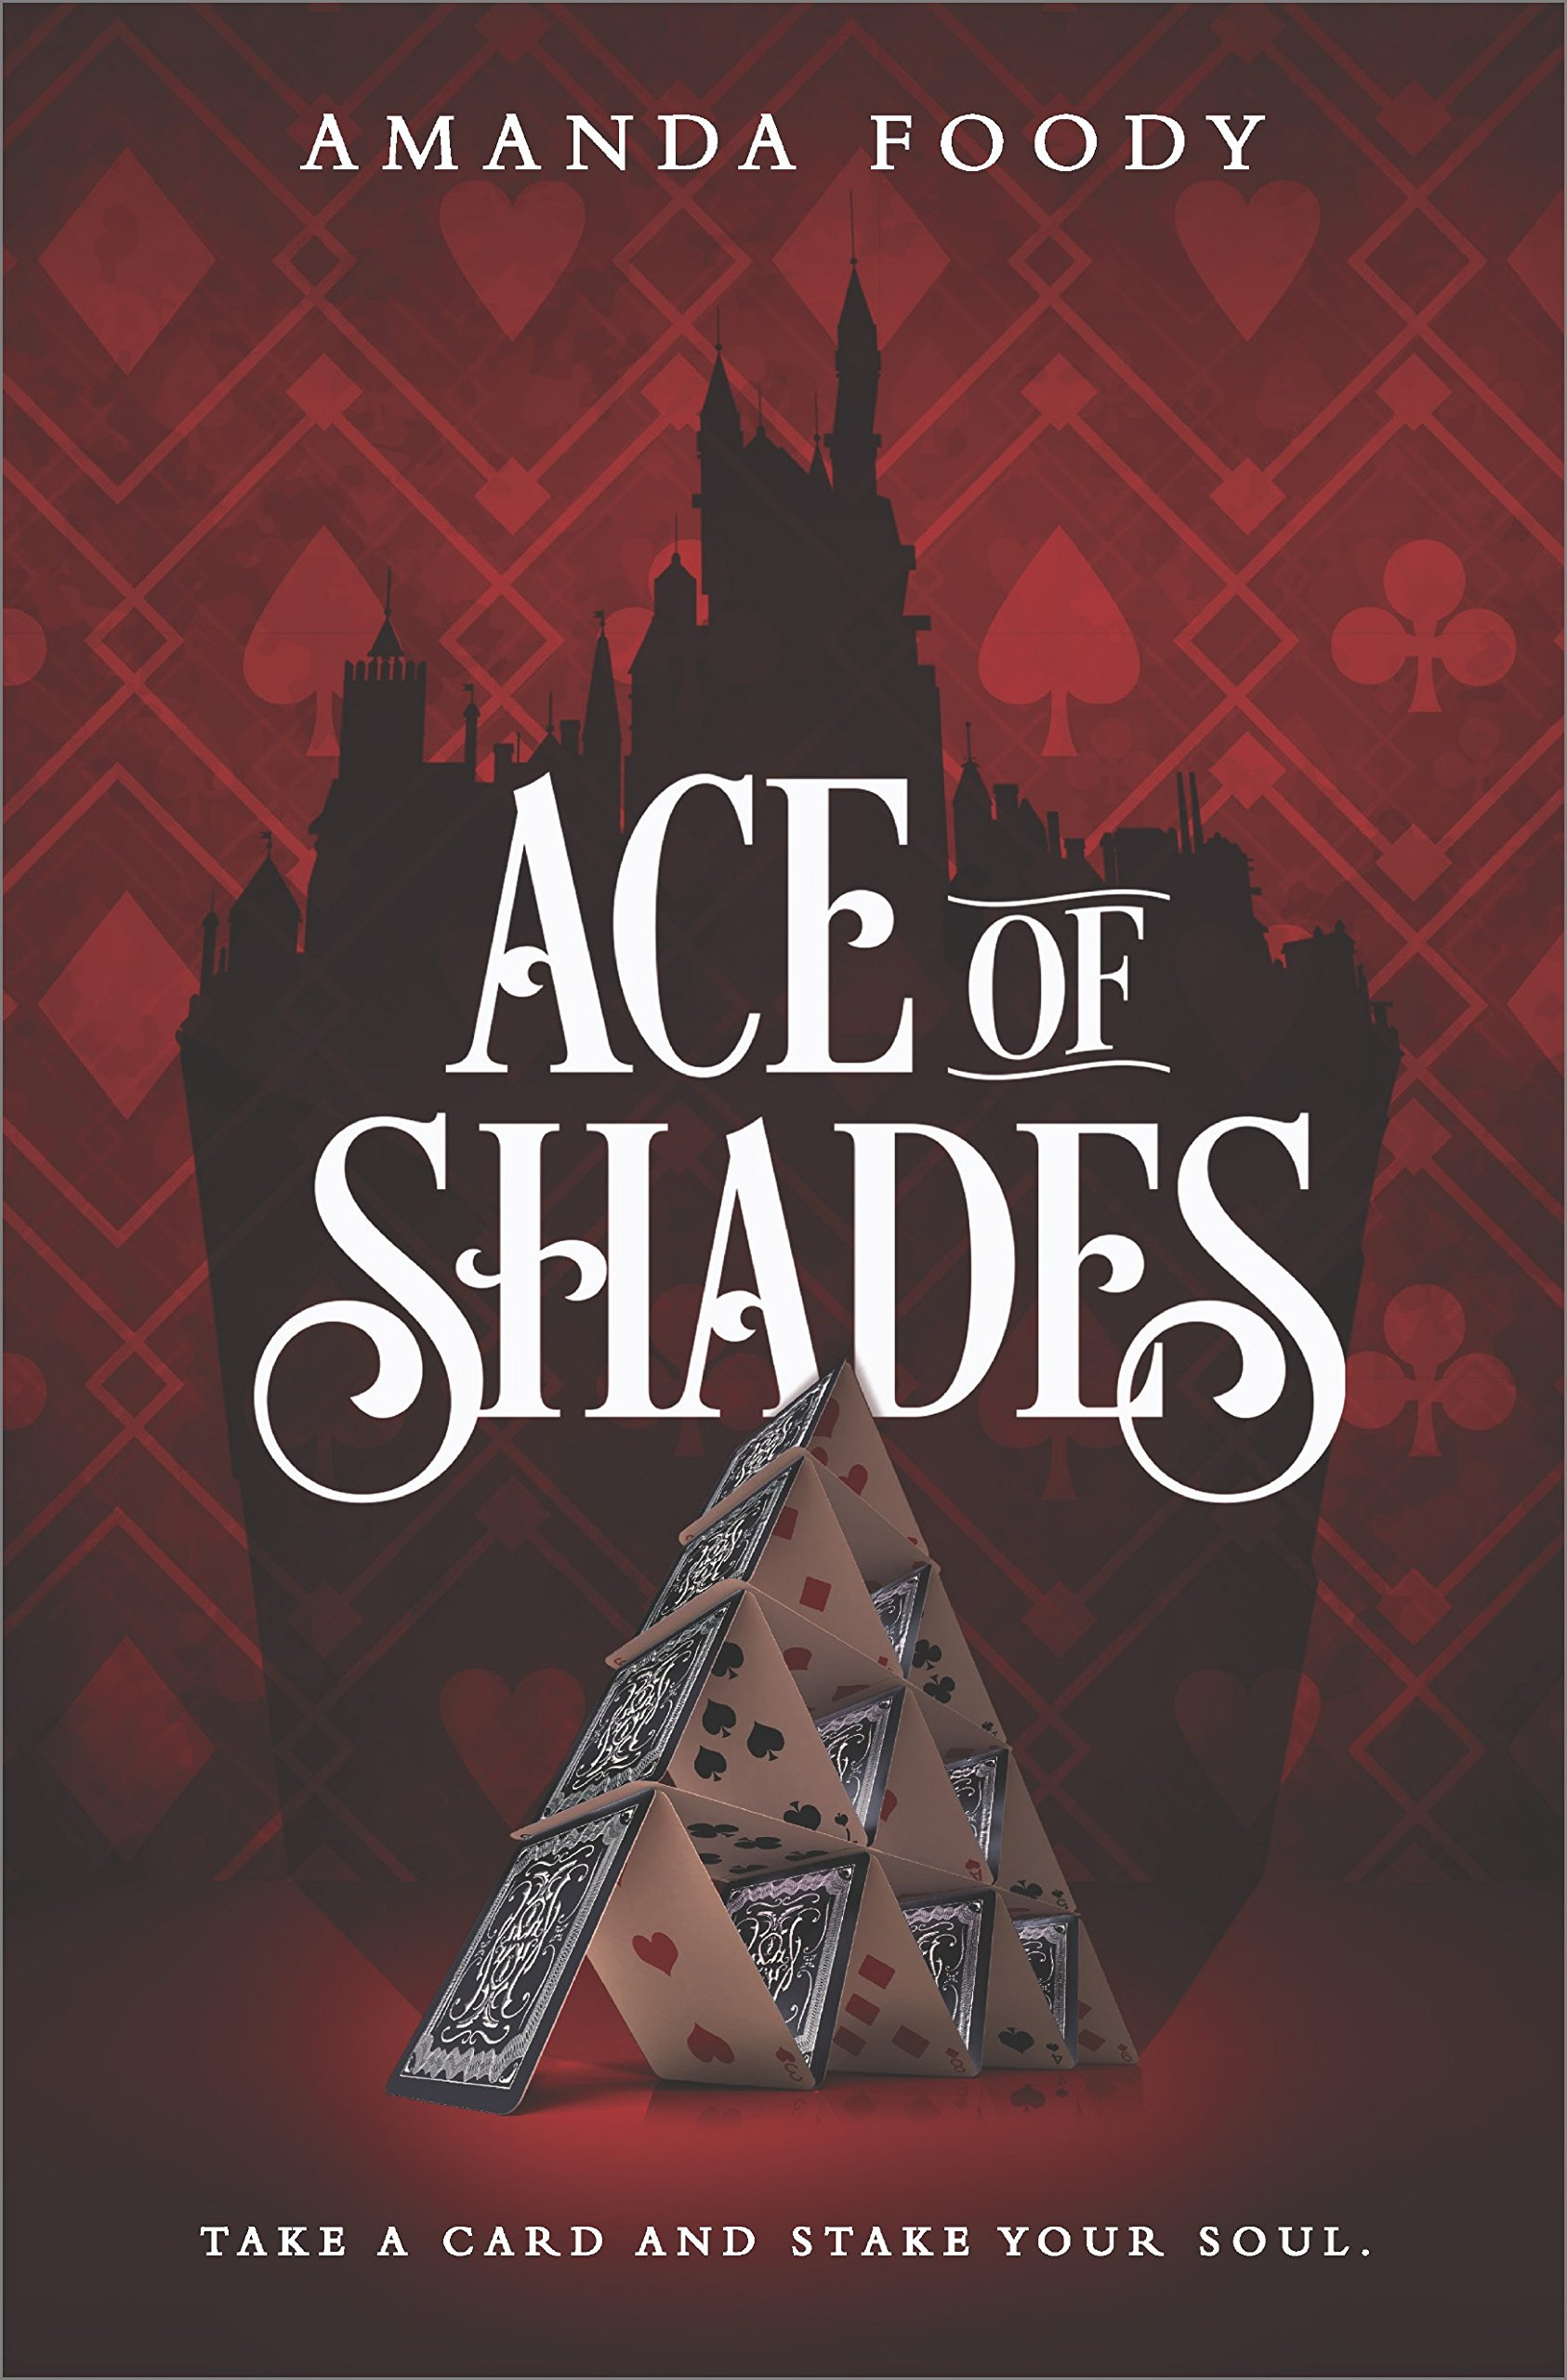 Ace of Shades